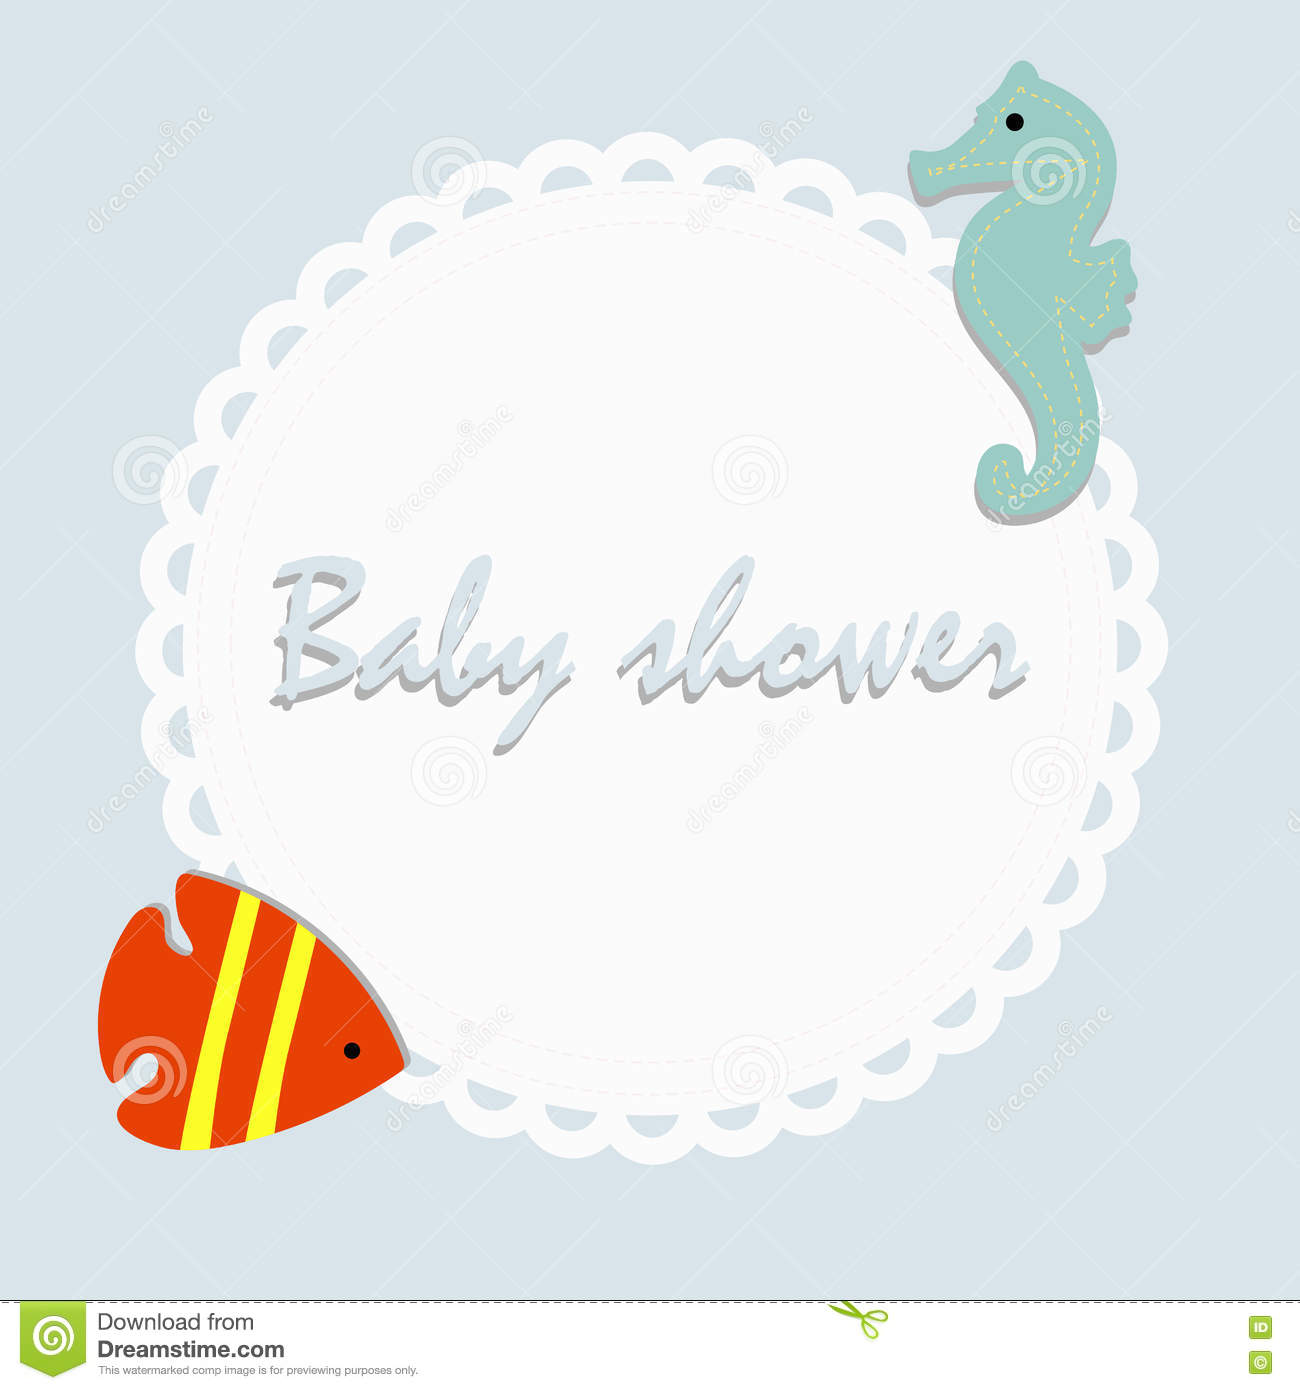 childrens round frame on a blue background with cute sea creatures